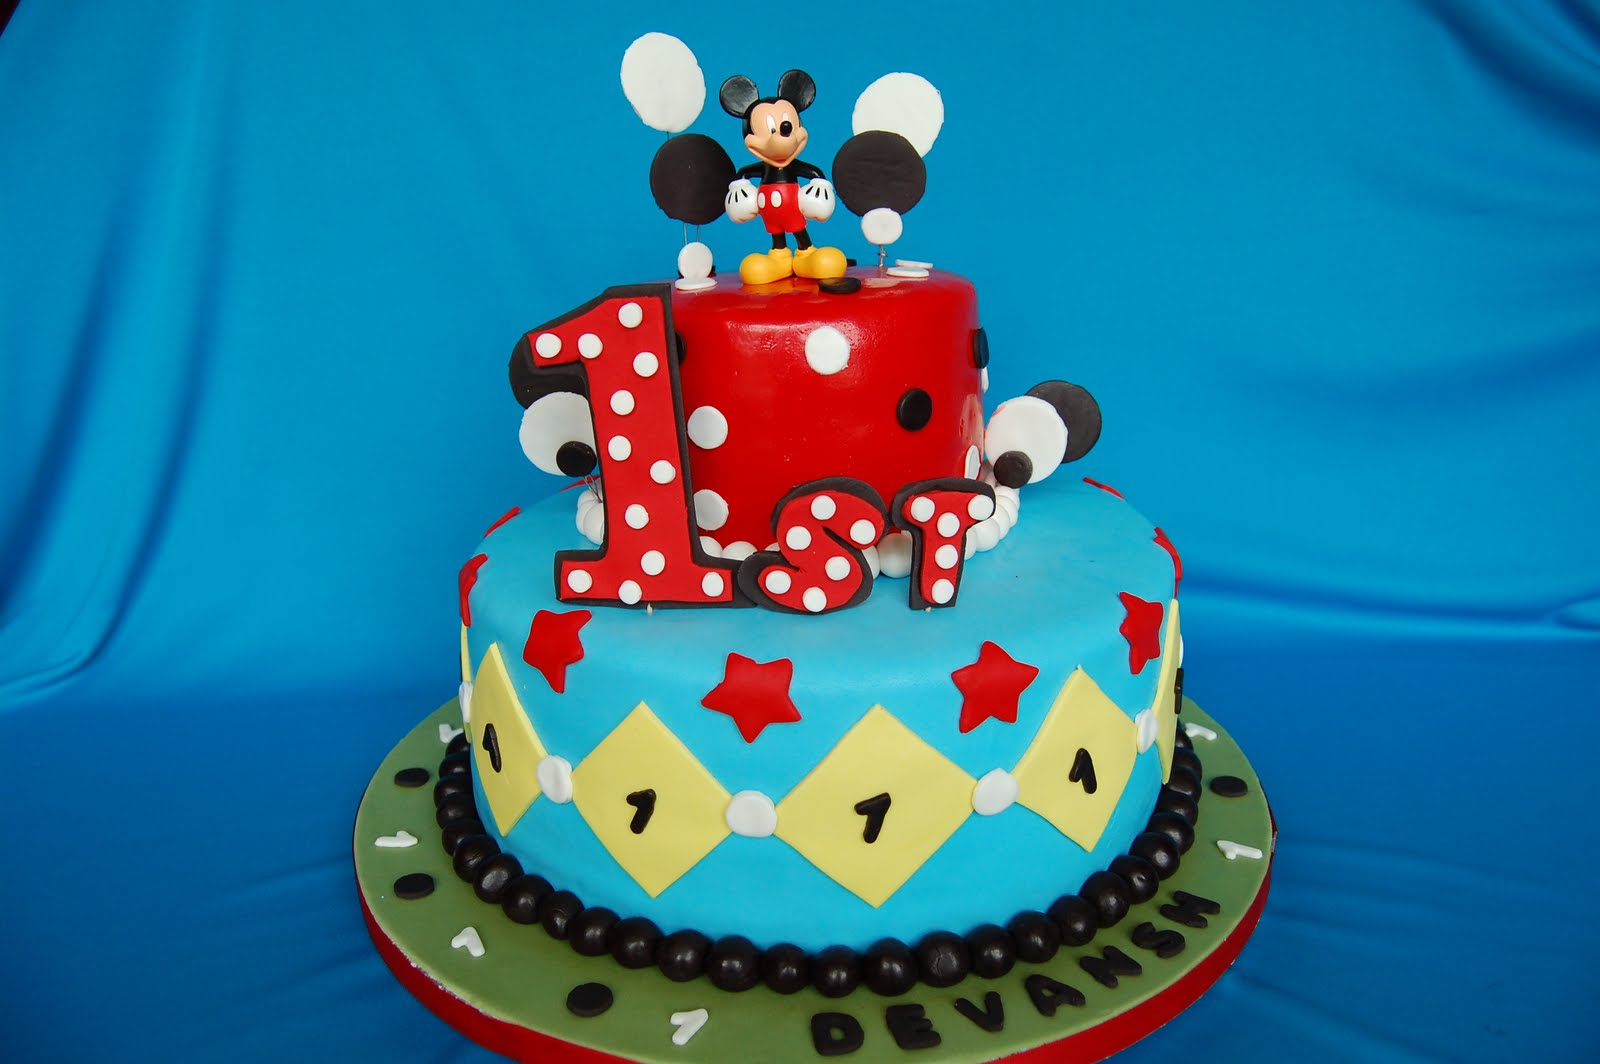 Cake Images Of Mickey Mouse : CUSTOMISED CAKES BY JEN: polka dot mickey mouse cake